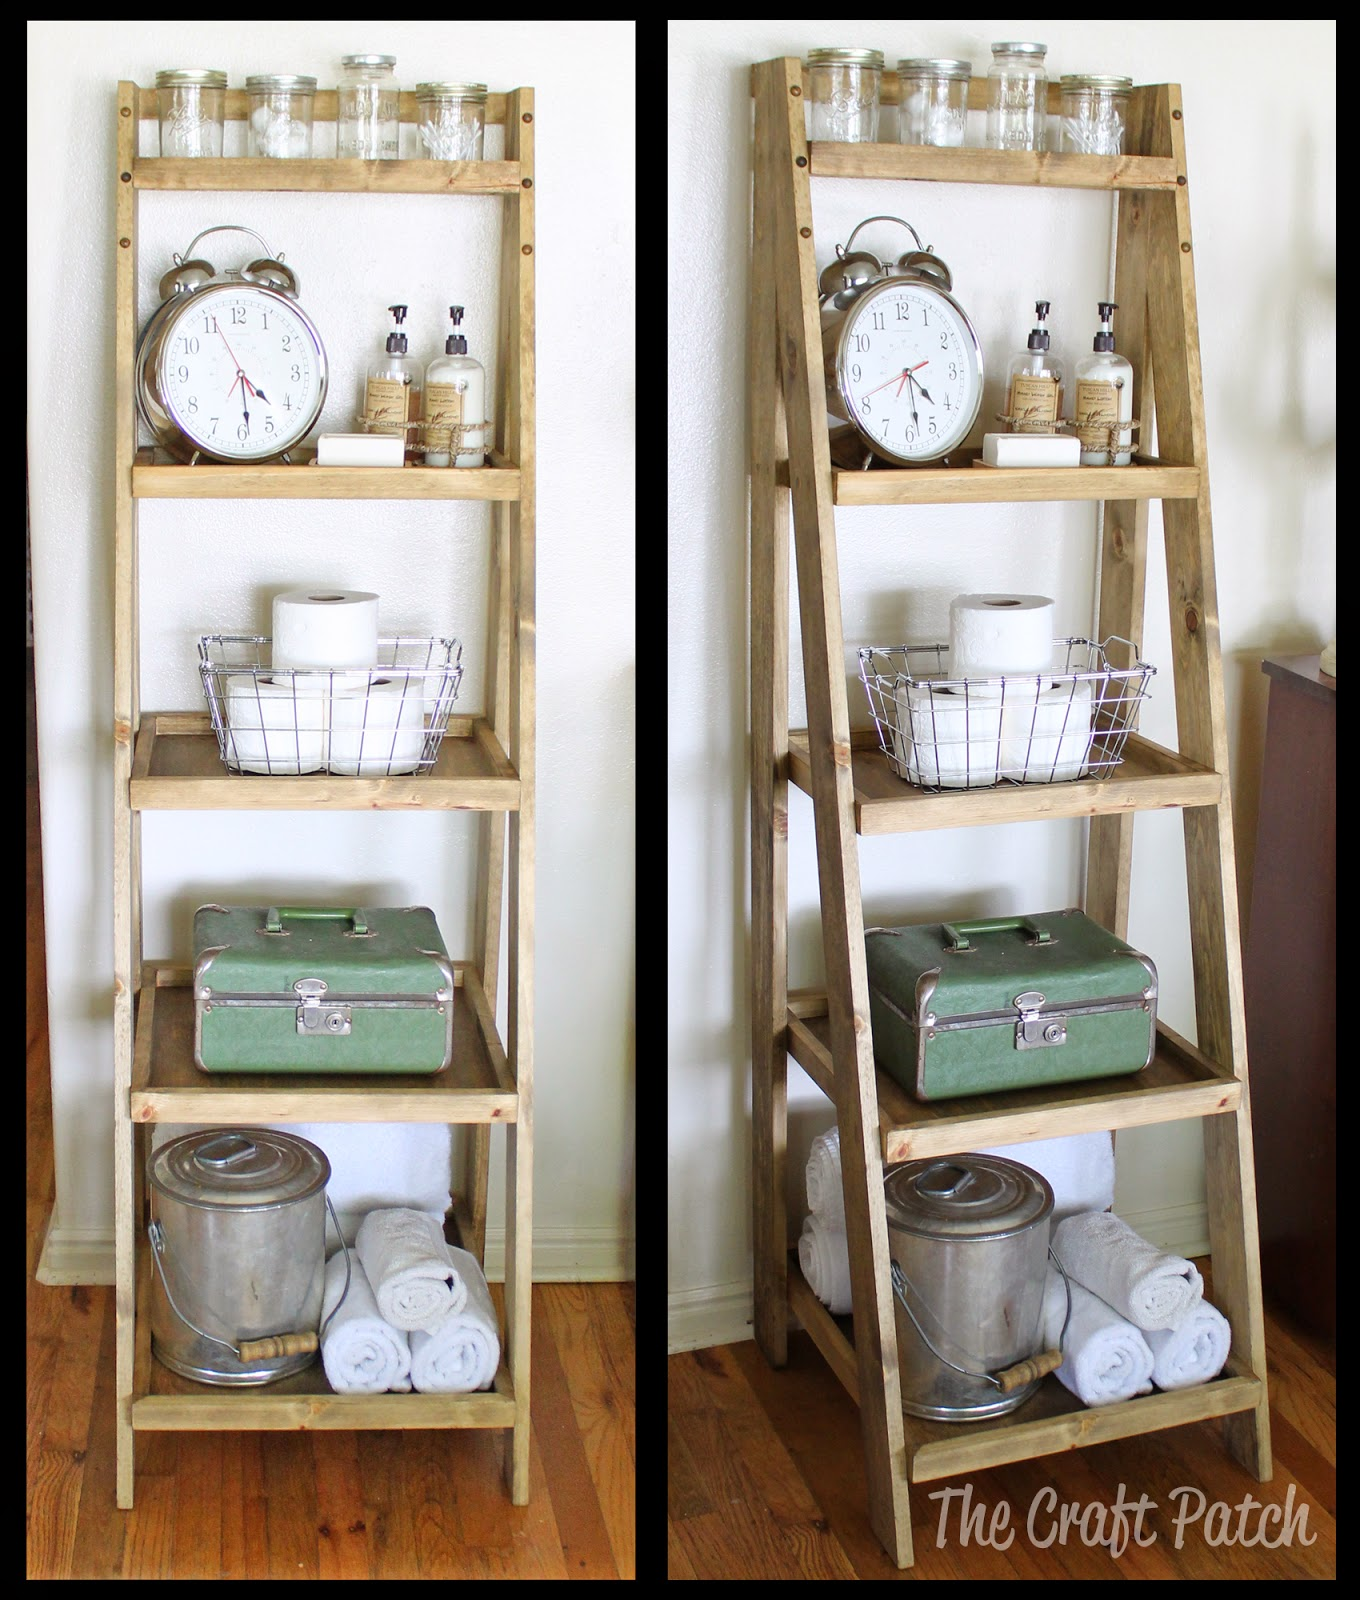 diy ladder shelf bathroom storage - thecraftpatchblog